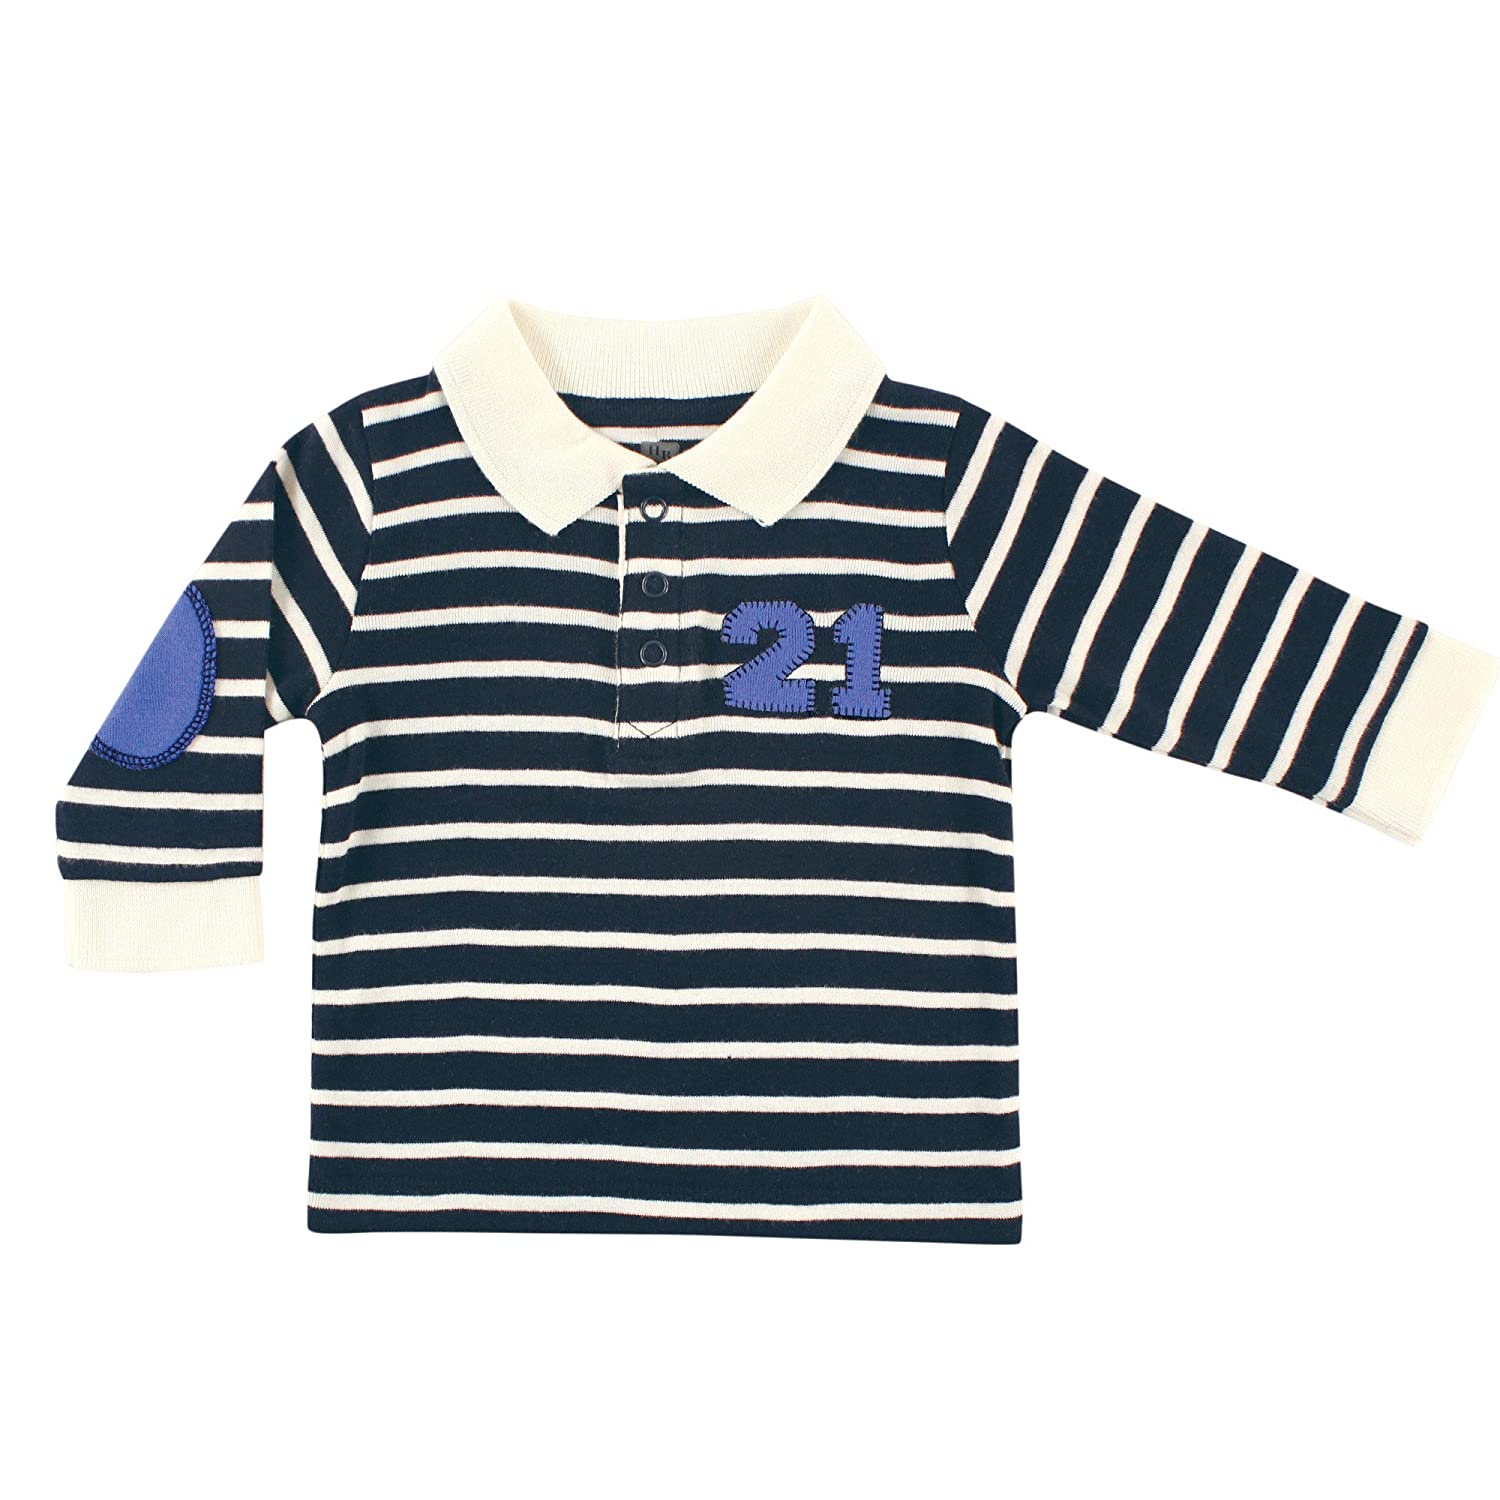 Hudson Baby Long Sleeve Striped Polo Shirt - Twenty One 10150685